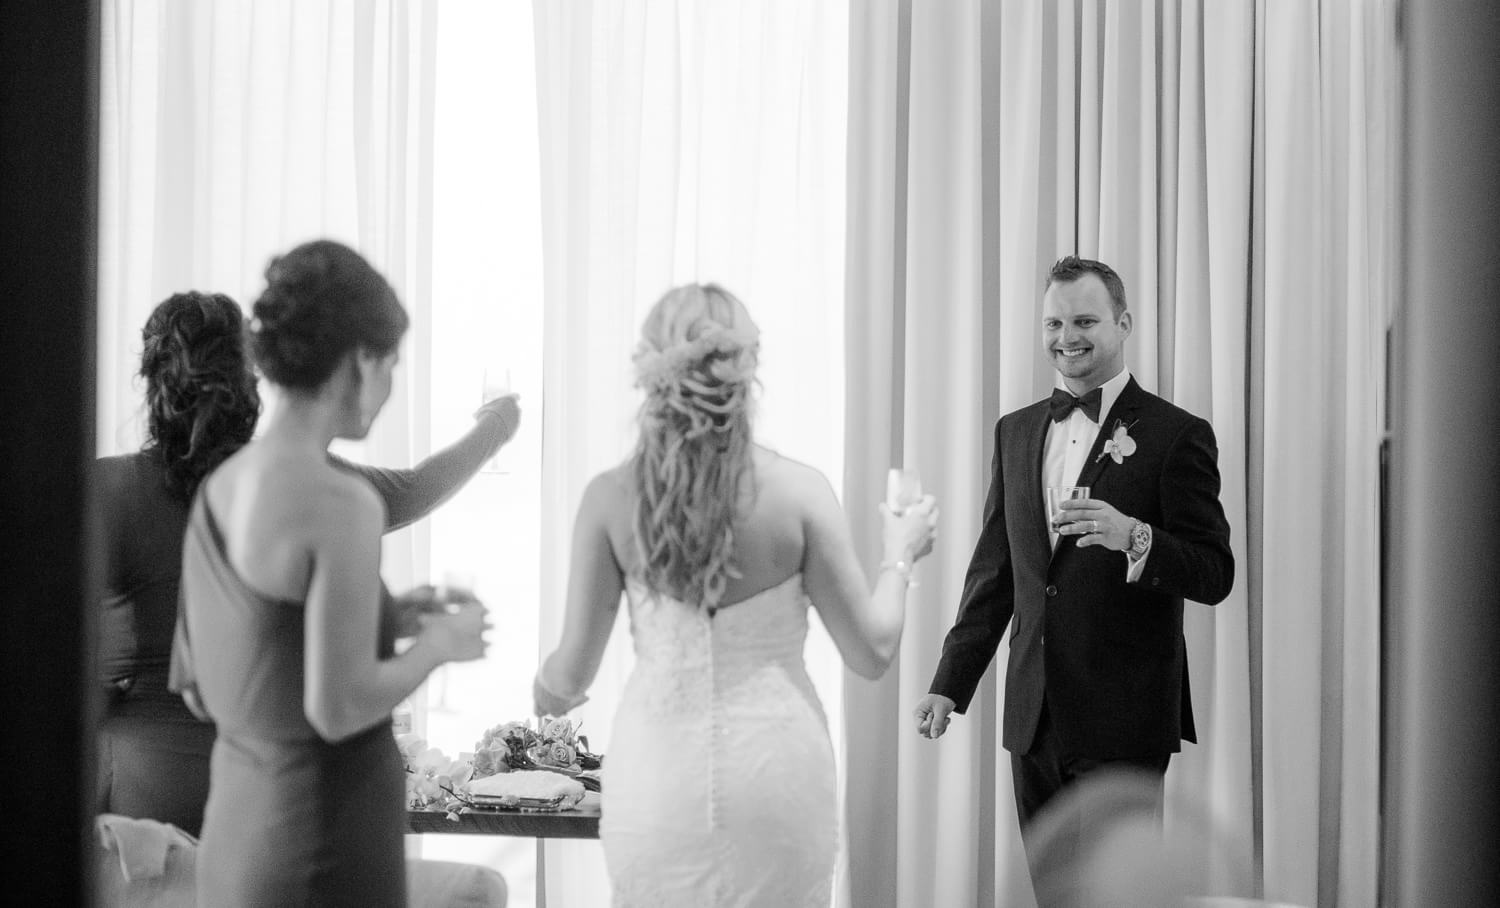 Bridal party in room at Cancun wedding